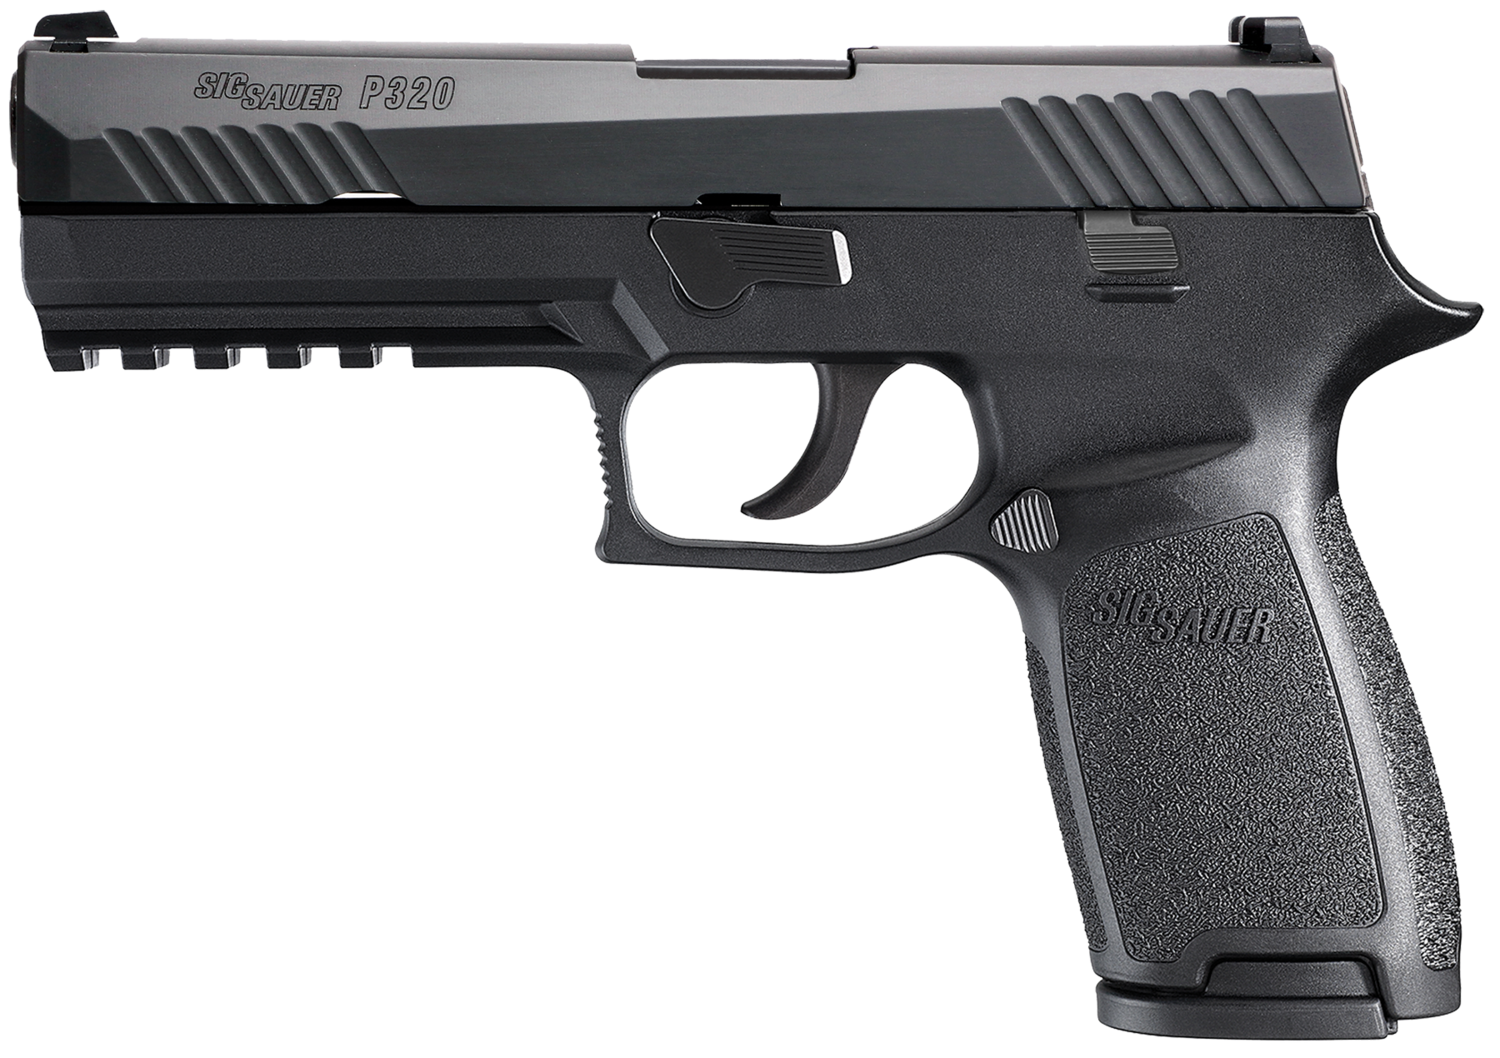 """80% Sig Sauer - P320 Full Size Double 9mm Luger 4.7"""" 17+1 2 Mags - Black Polymer Grip/Frame Grip - Black Nitron Stainless Steel"""